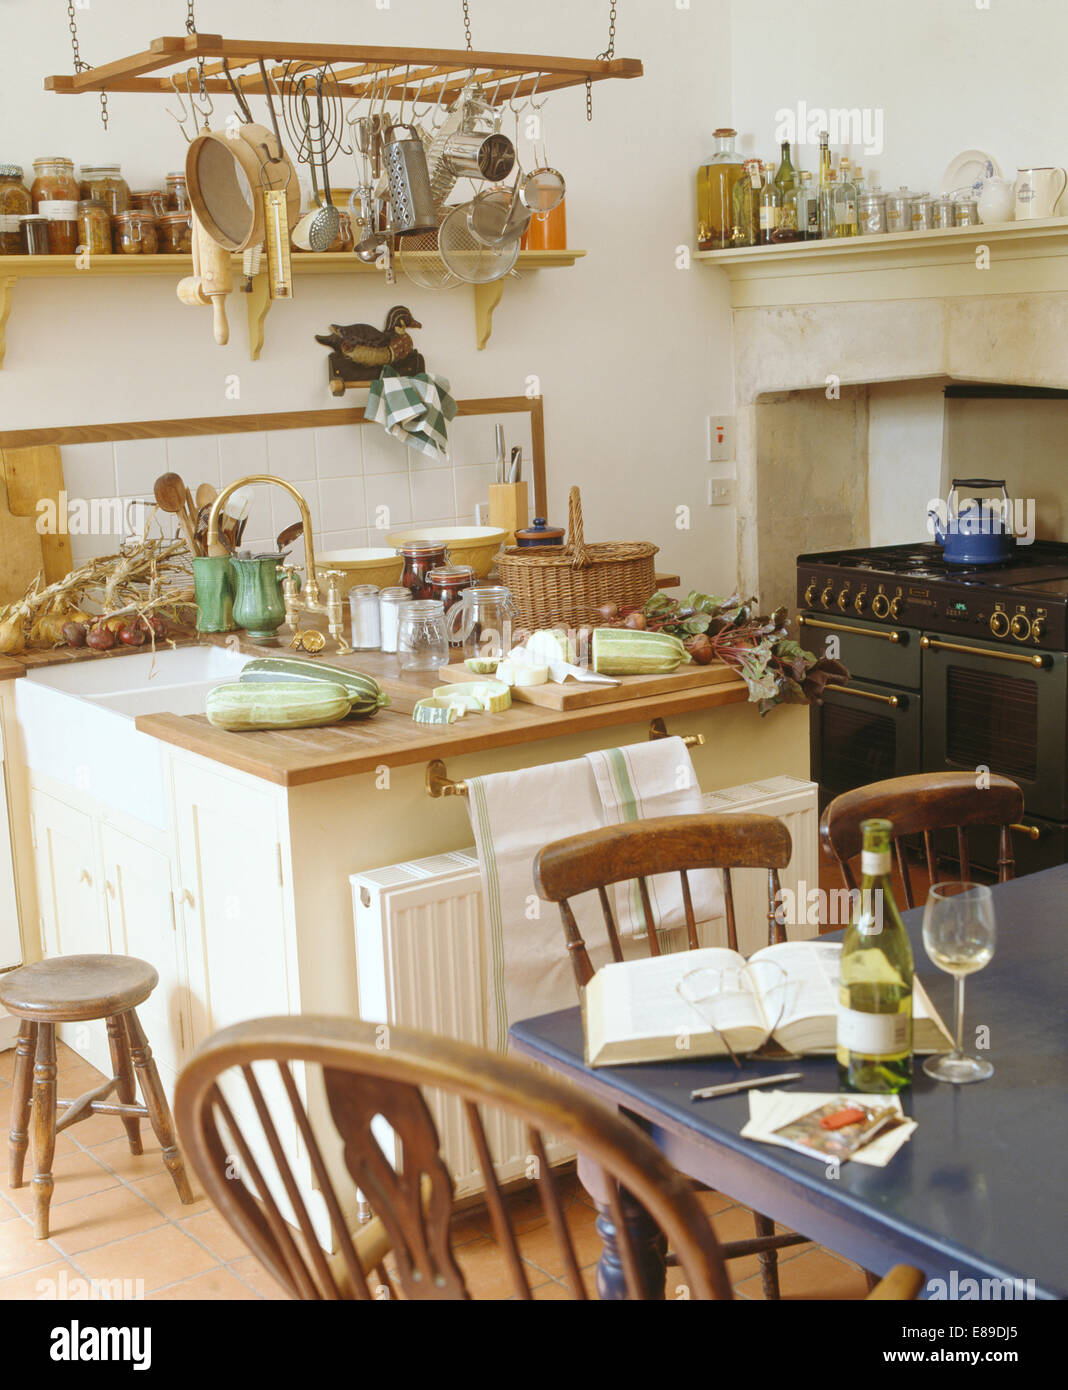 Utensils on hanging rack above island unit in country kitchen with old wooden chairs and blue painted table